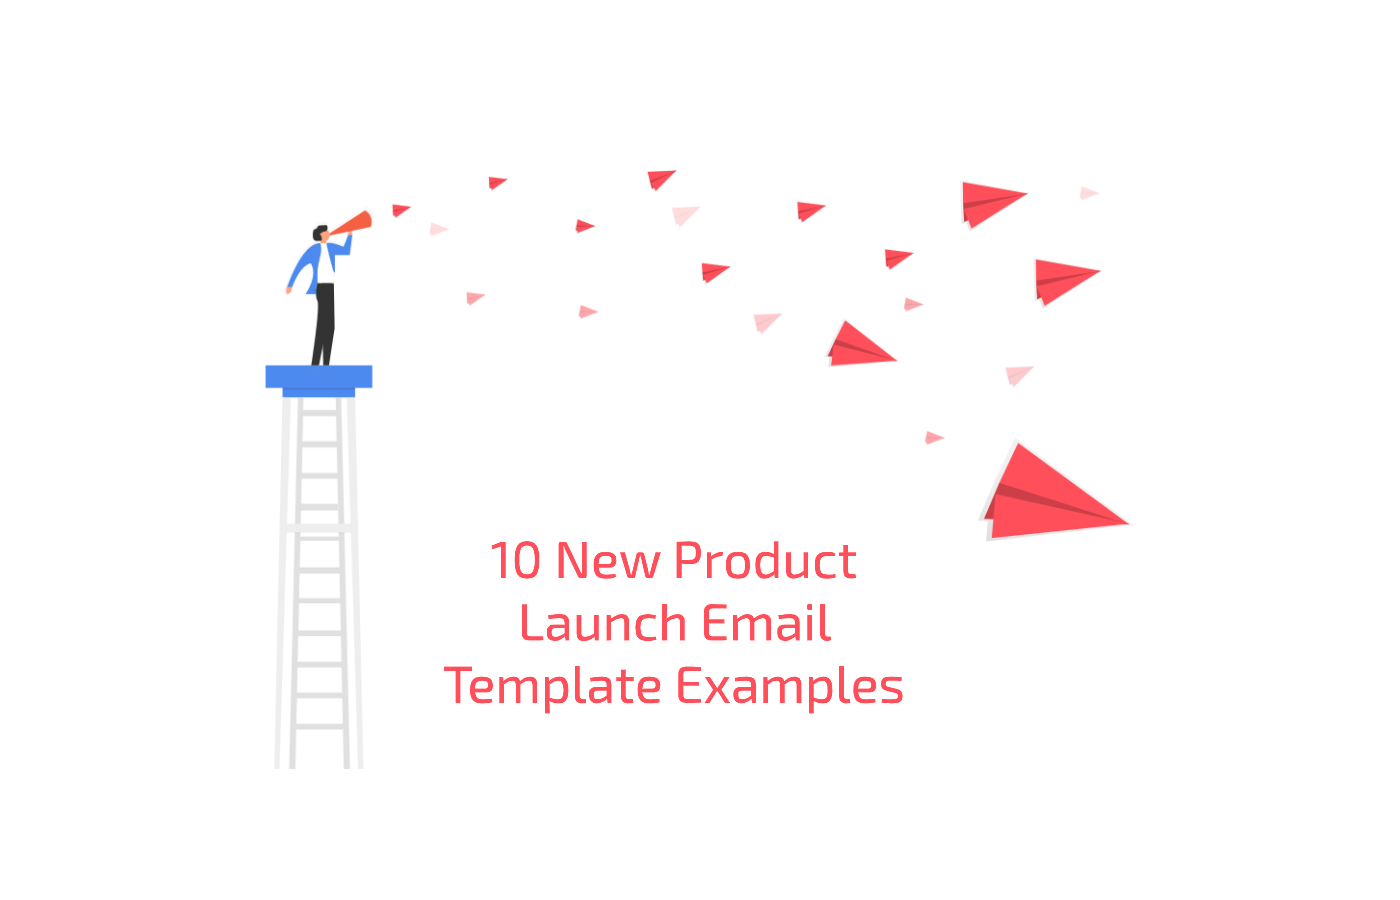 new_product_launch_email_template_examples